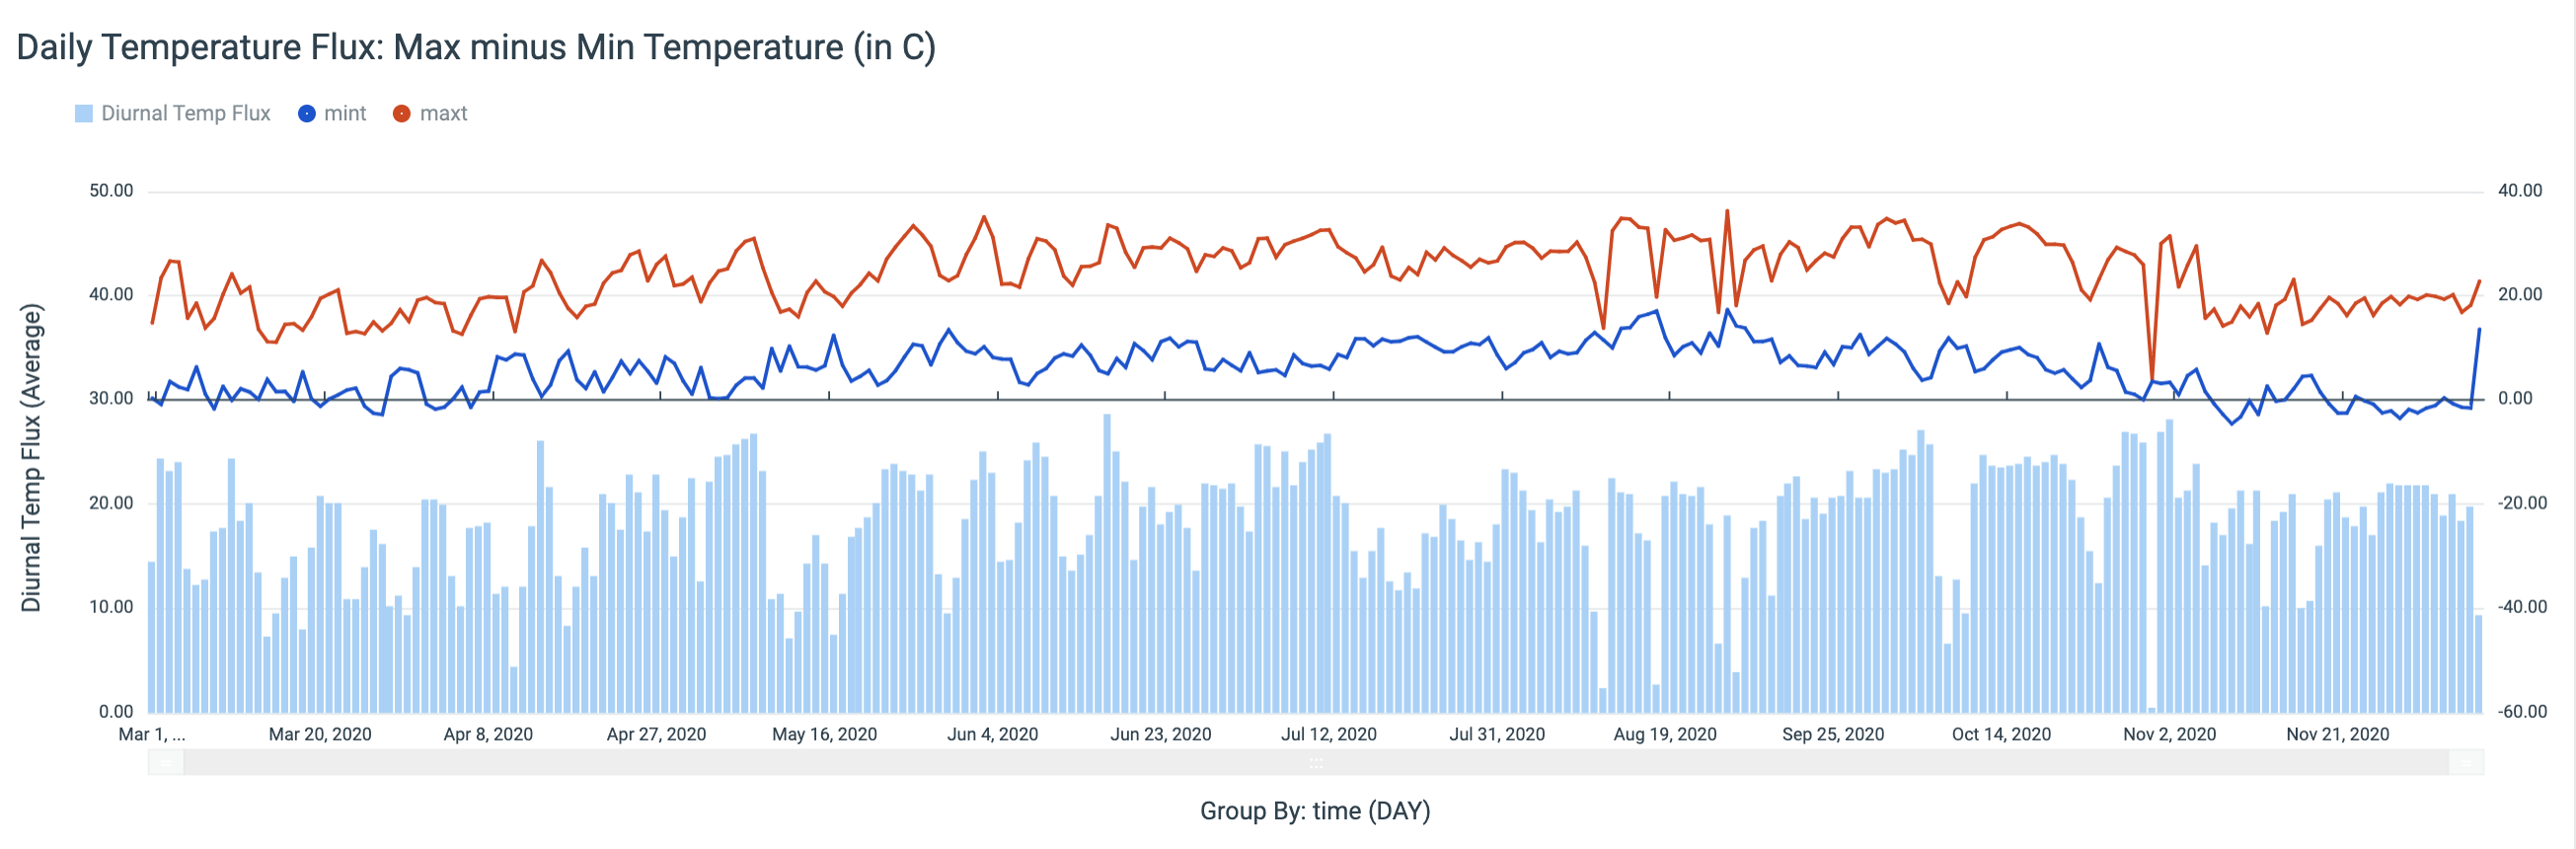 Arable's Advanced Analytics Location Deep Dive Weather Tab shows several graphs, including diurnal temperature flux.